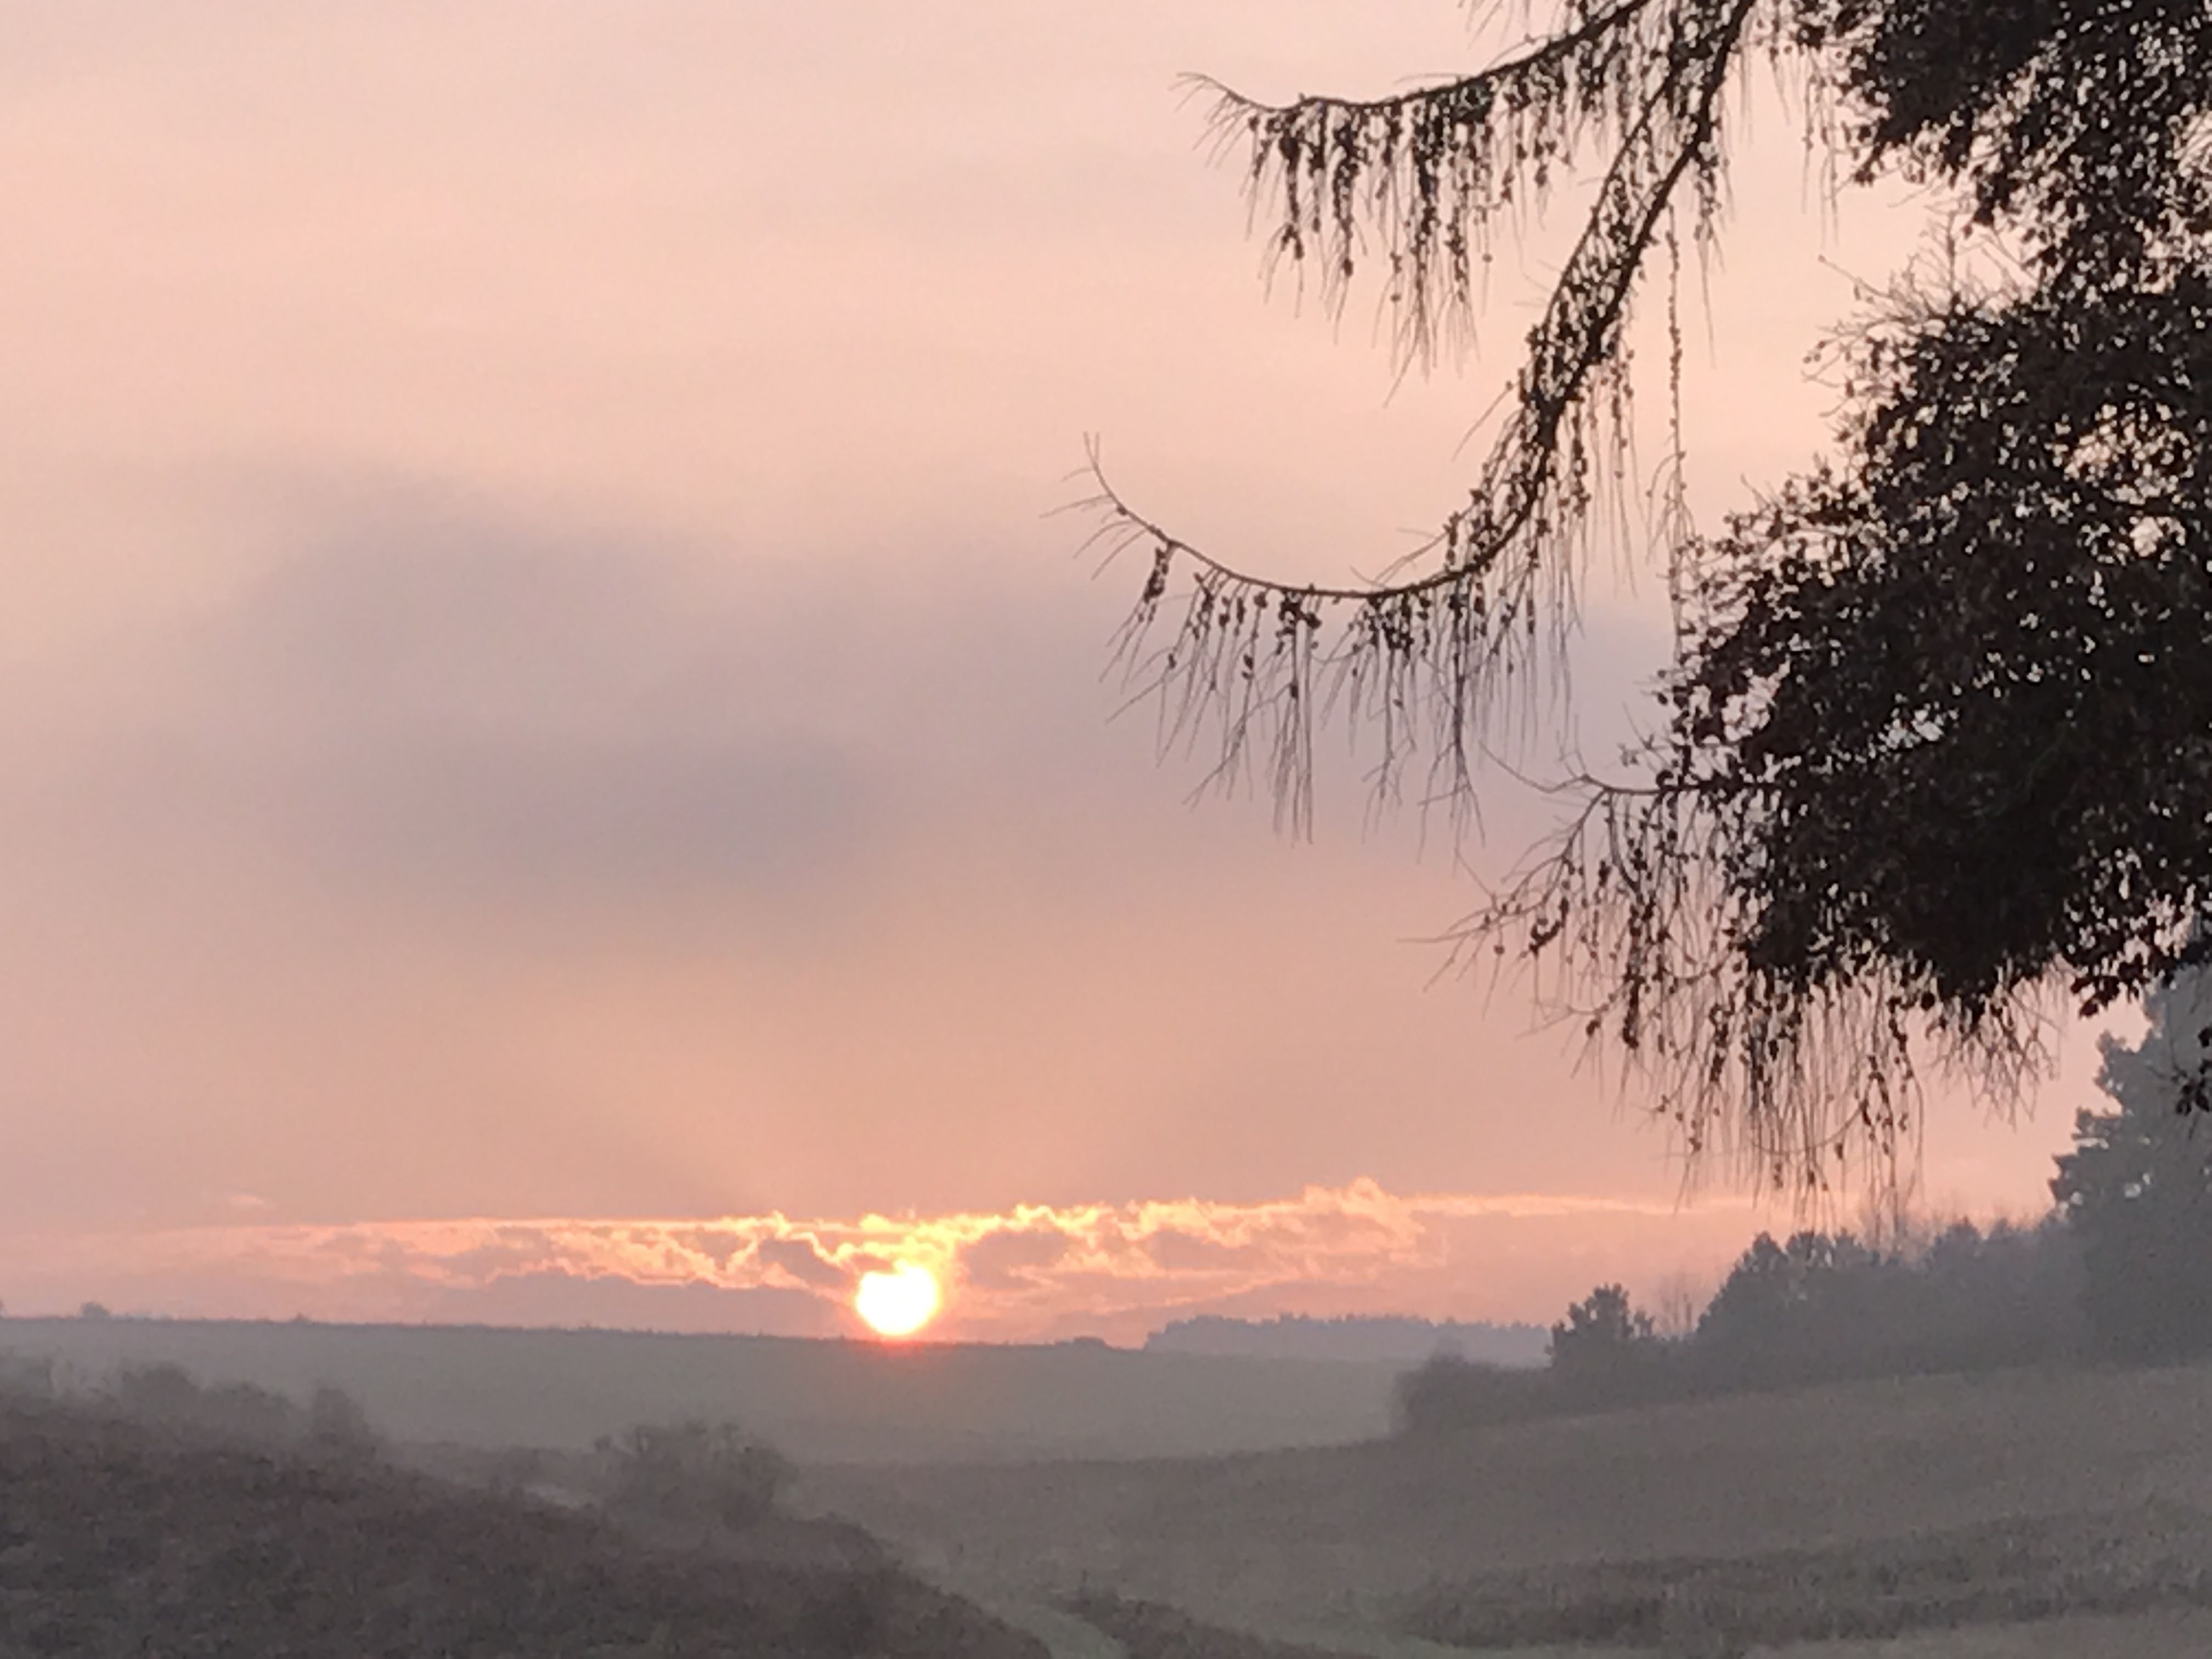 The sunsets around Happy Valley Norfolk - Glamping - Woodlands - Venue  email ; hello@